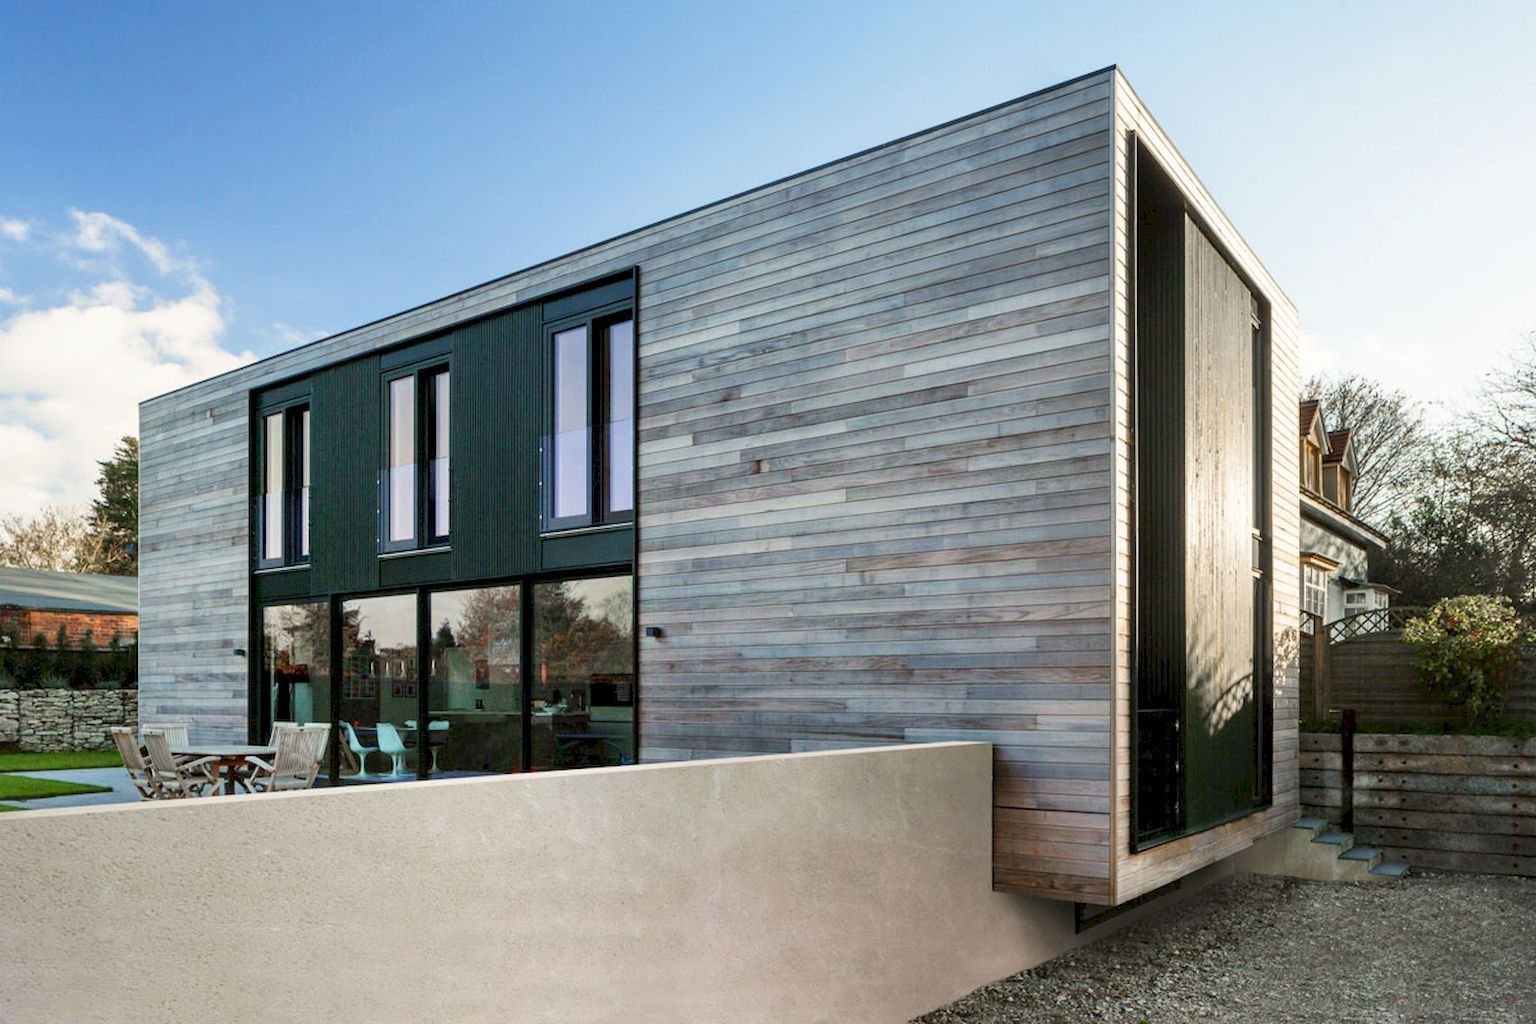 65 gorgeous shipping container house ideas on a budget 44 rh pinterest co uk